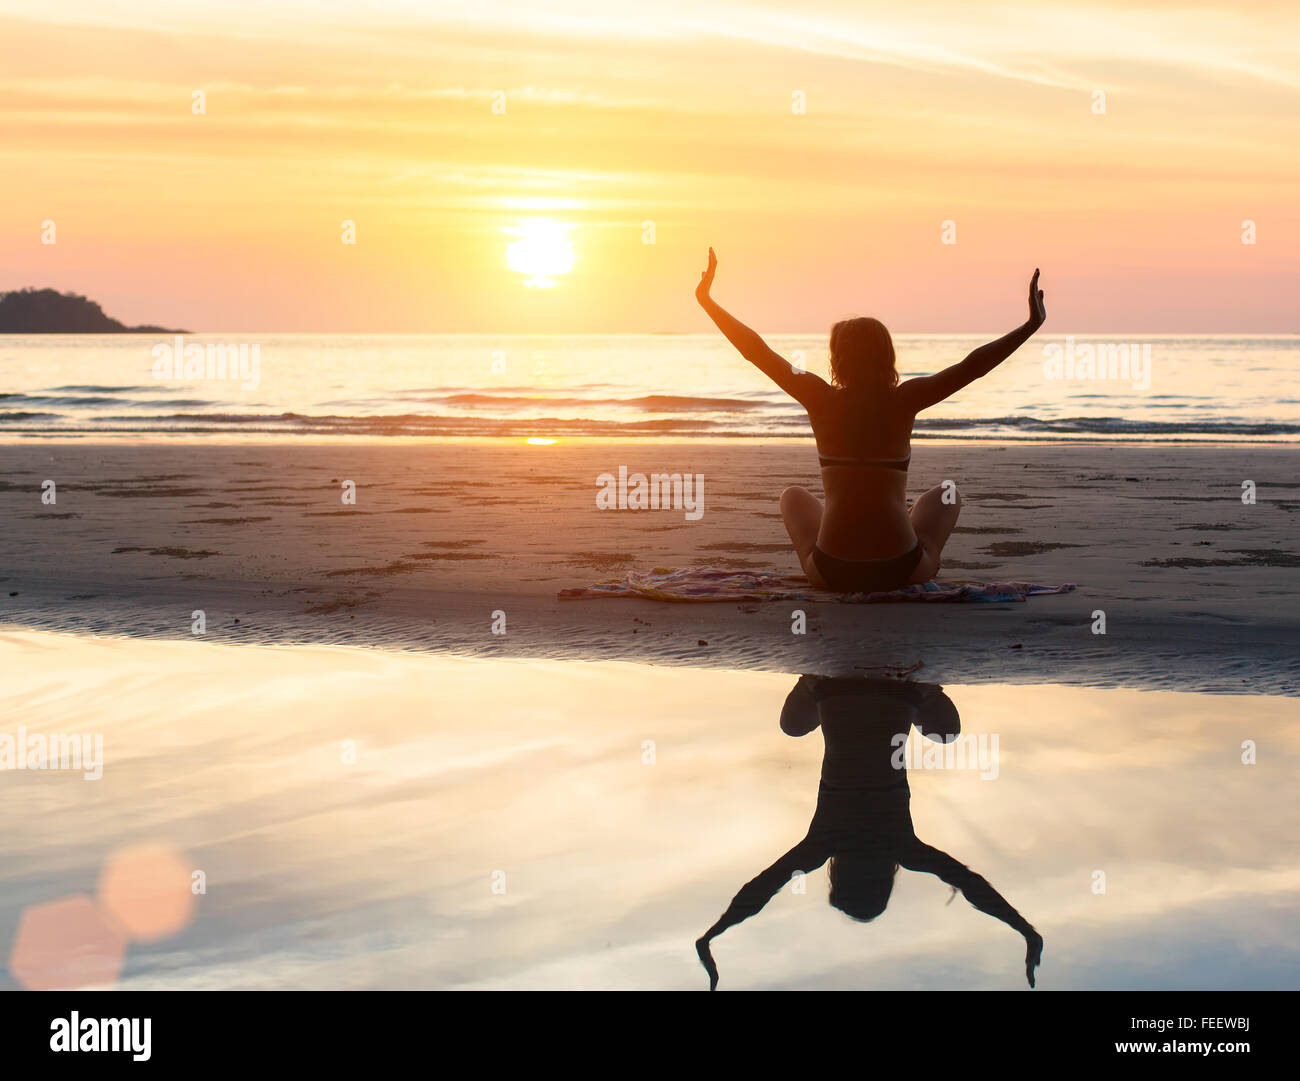 Yoga silhouette of woman doing exercise at sunset on the beach with reflection in the water. - Stock Image